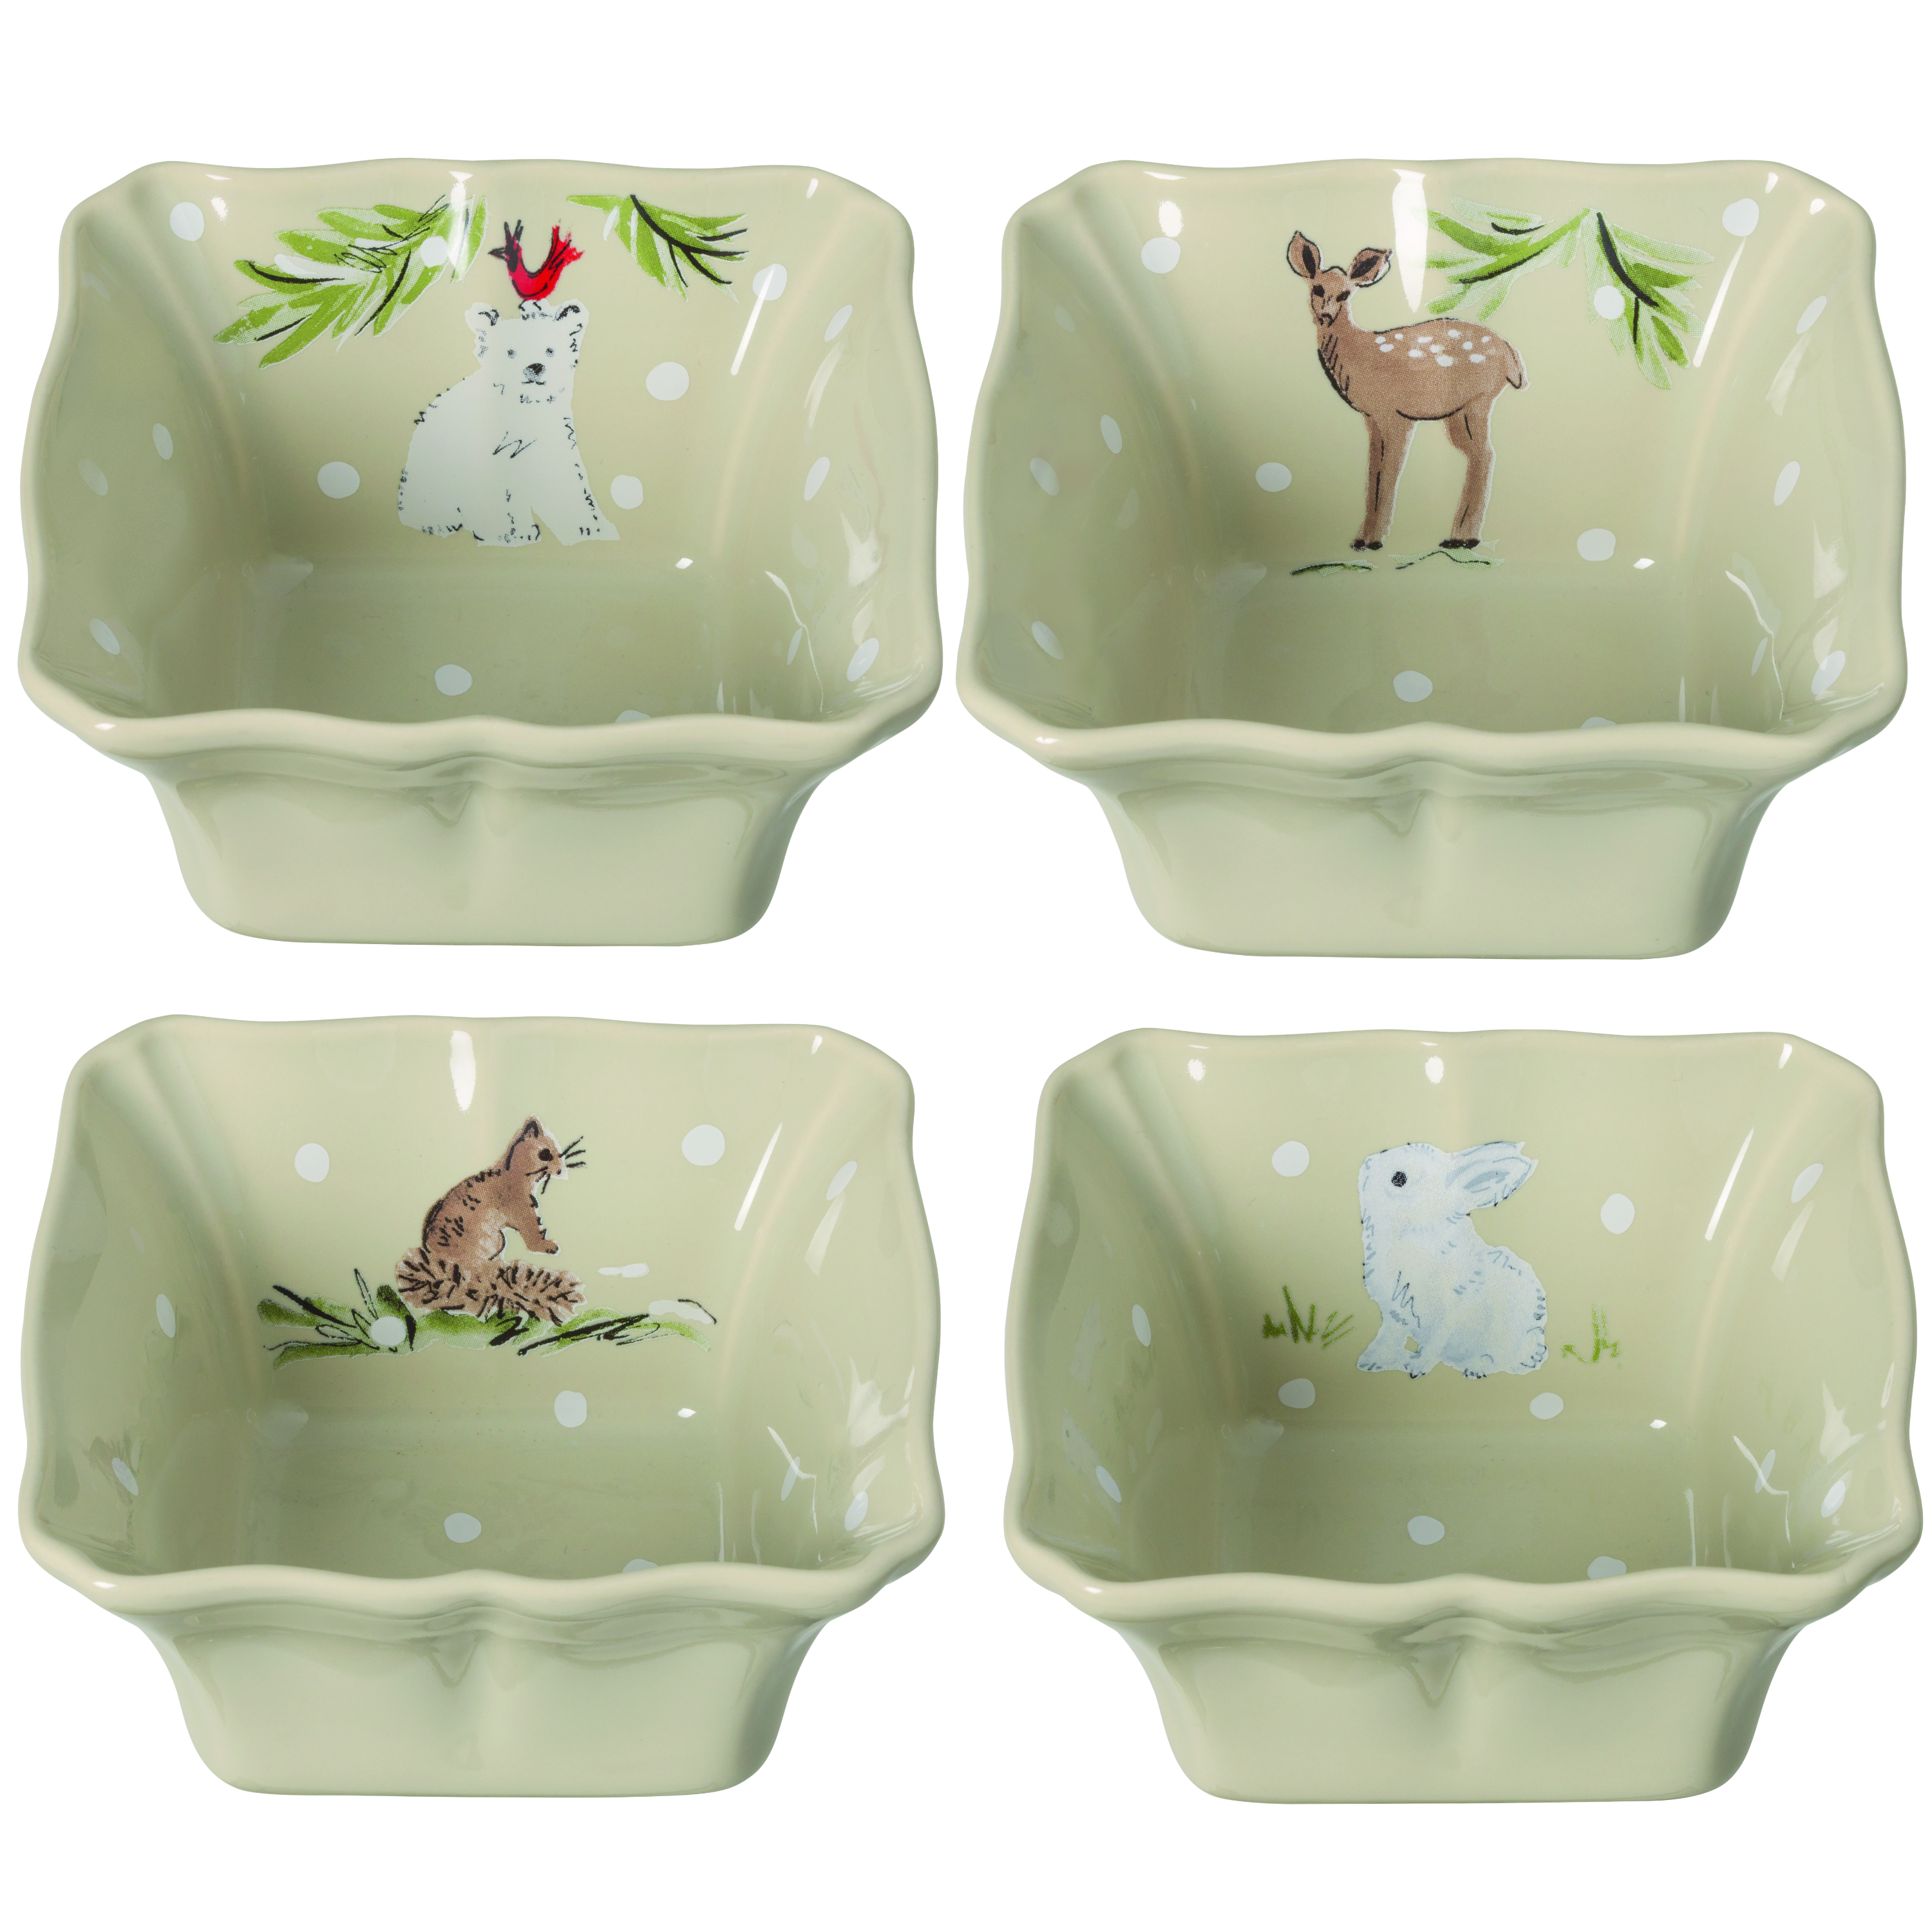 Deer Friends Linen Set 4 Individ Bakes 12.2cm X1 Sparkle Gift